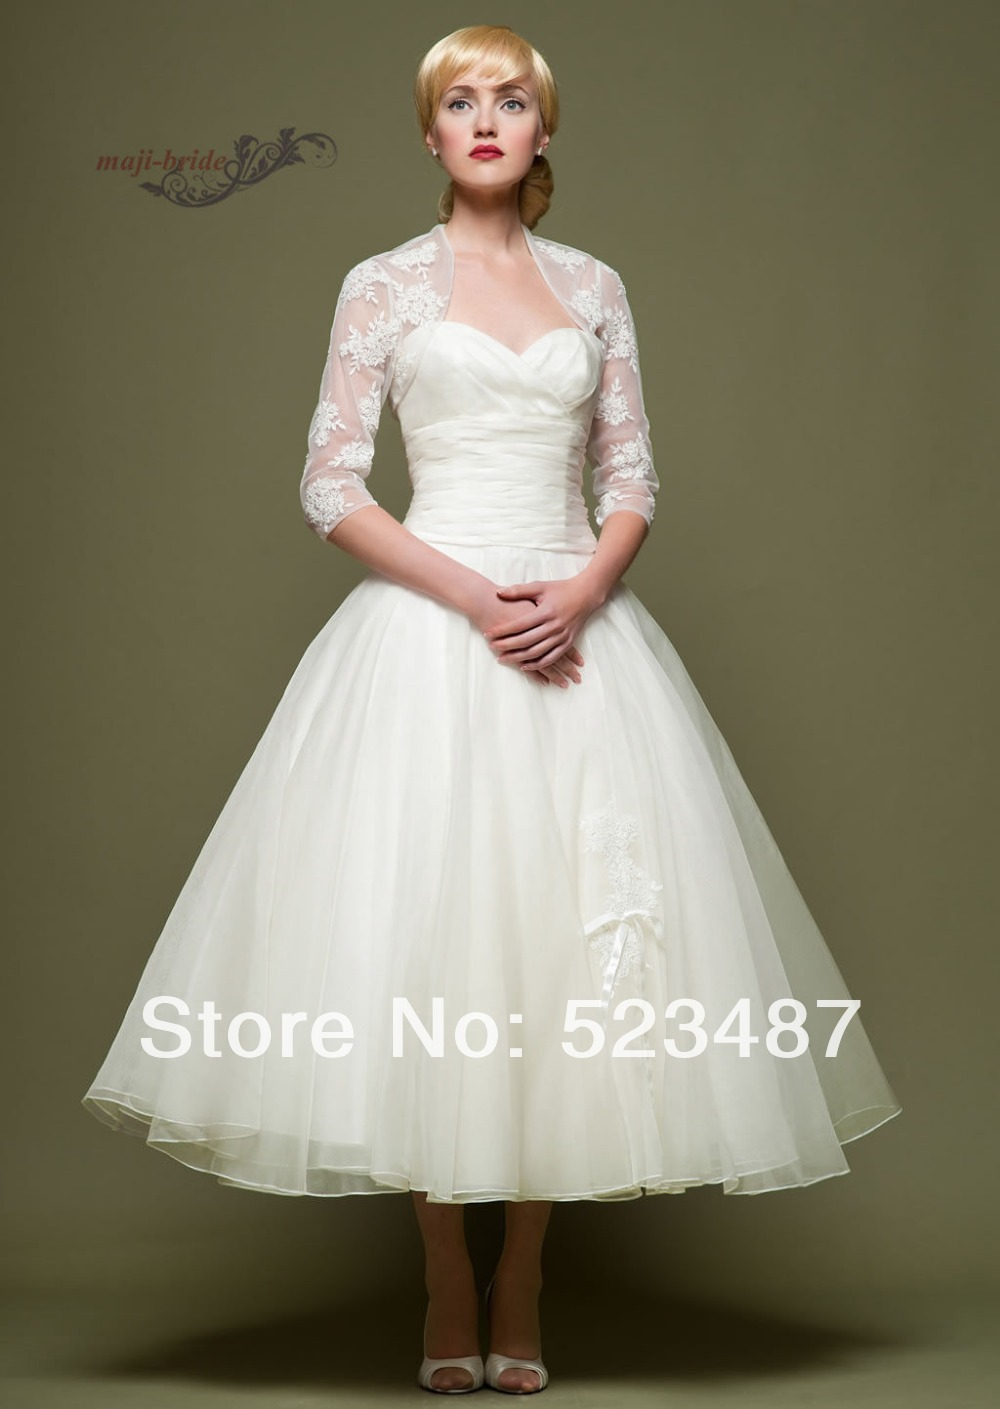 New vintage style custom 3 4 sleeve tea length wedding for Vintage wedding dresses tea length